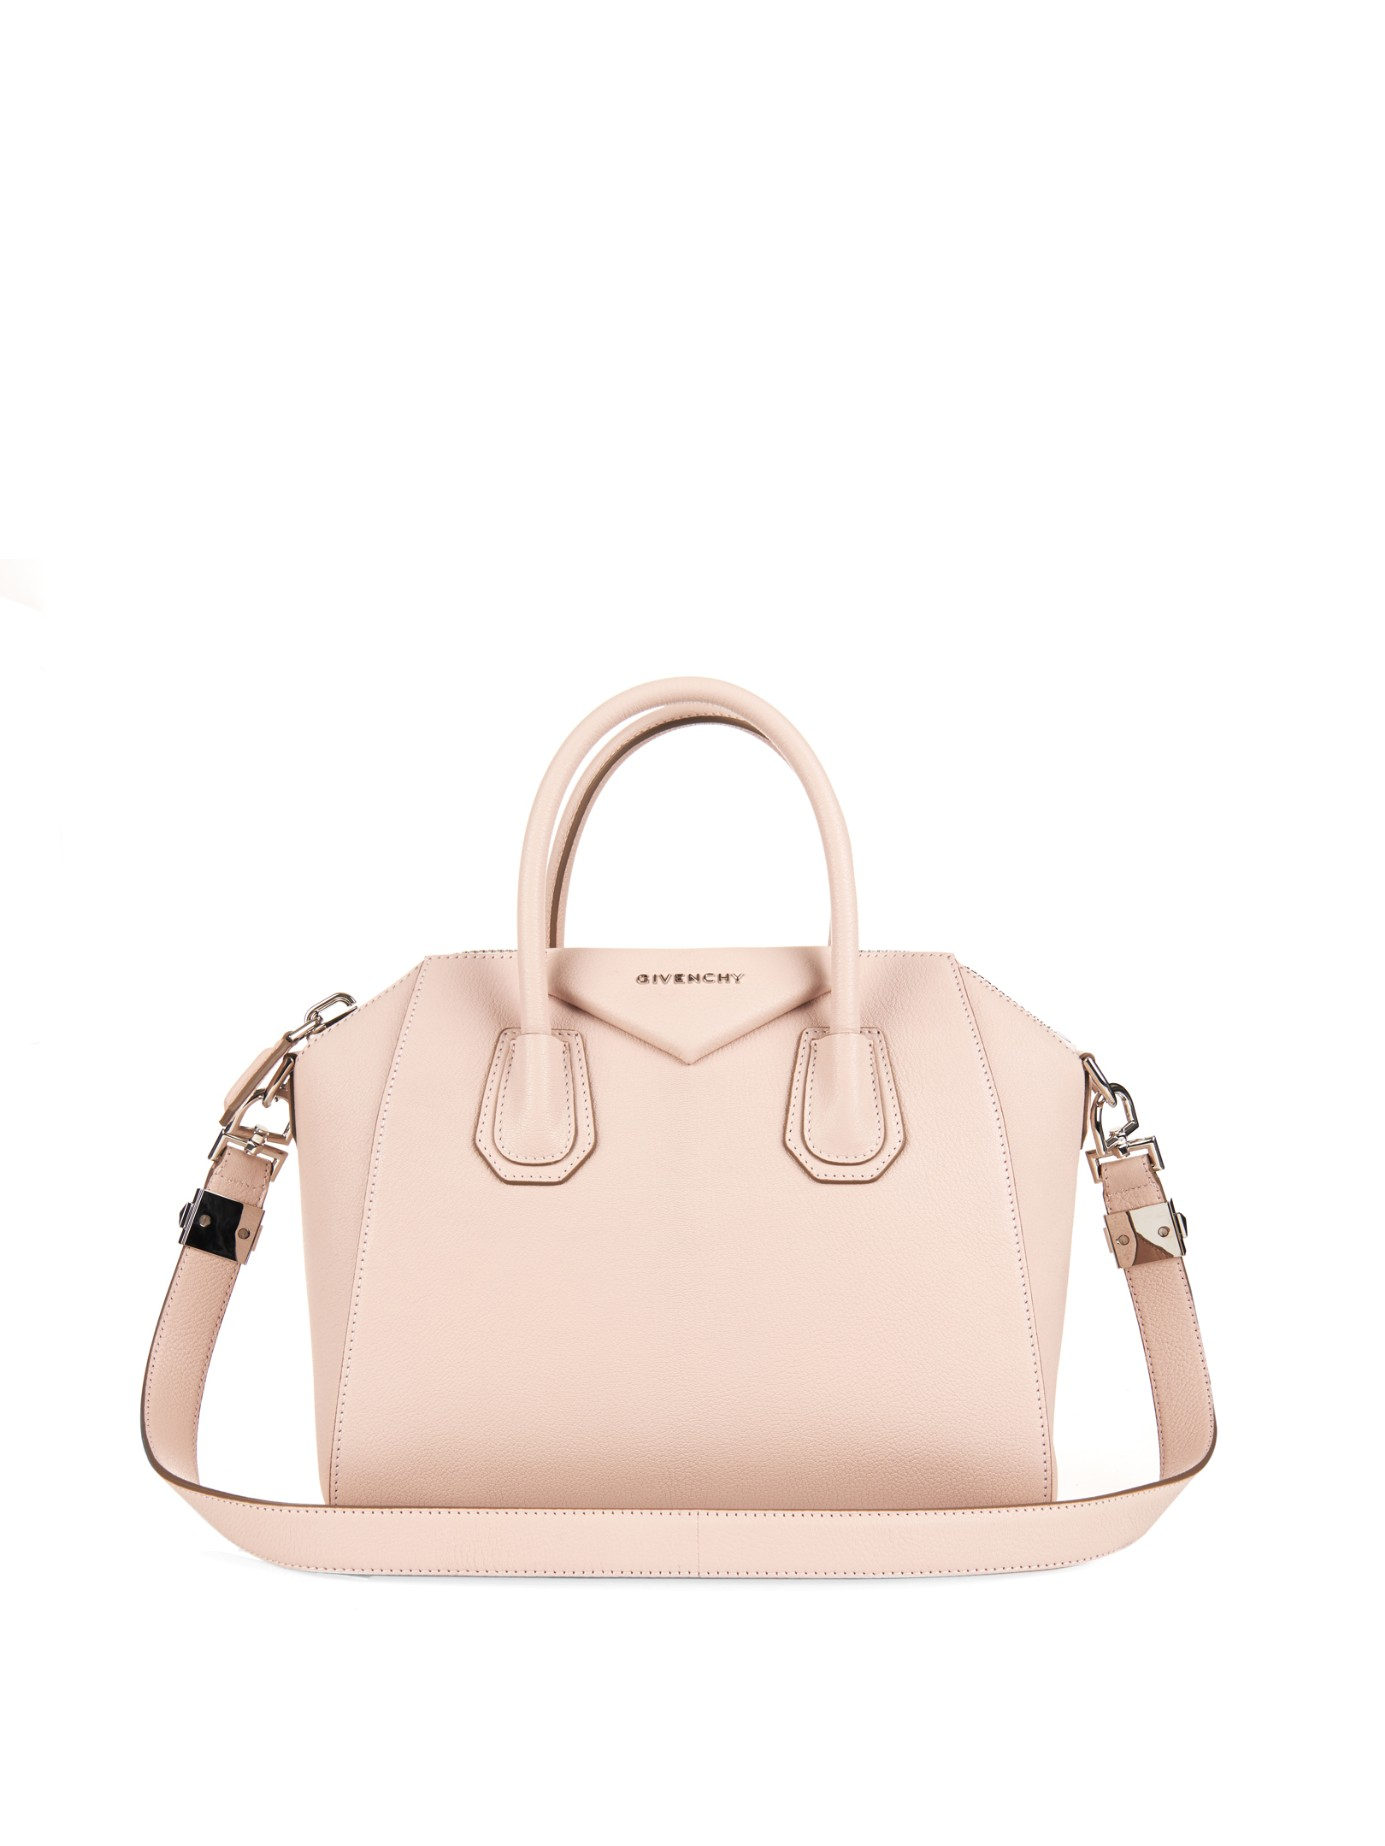 a13109b0b7d2d Givenchy Antigona Small Sugar-leather Tote in Pink - Lyst